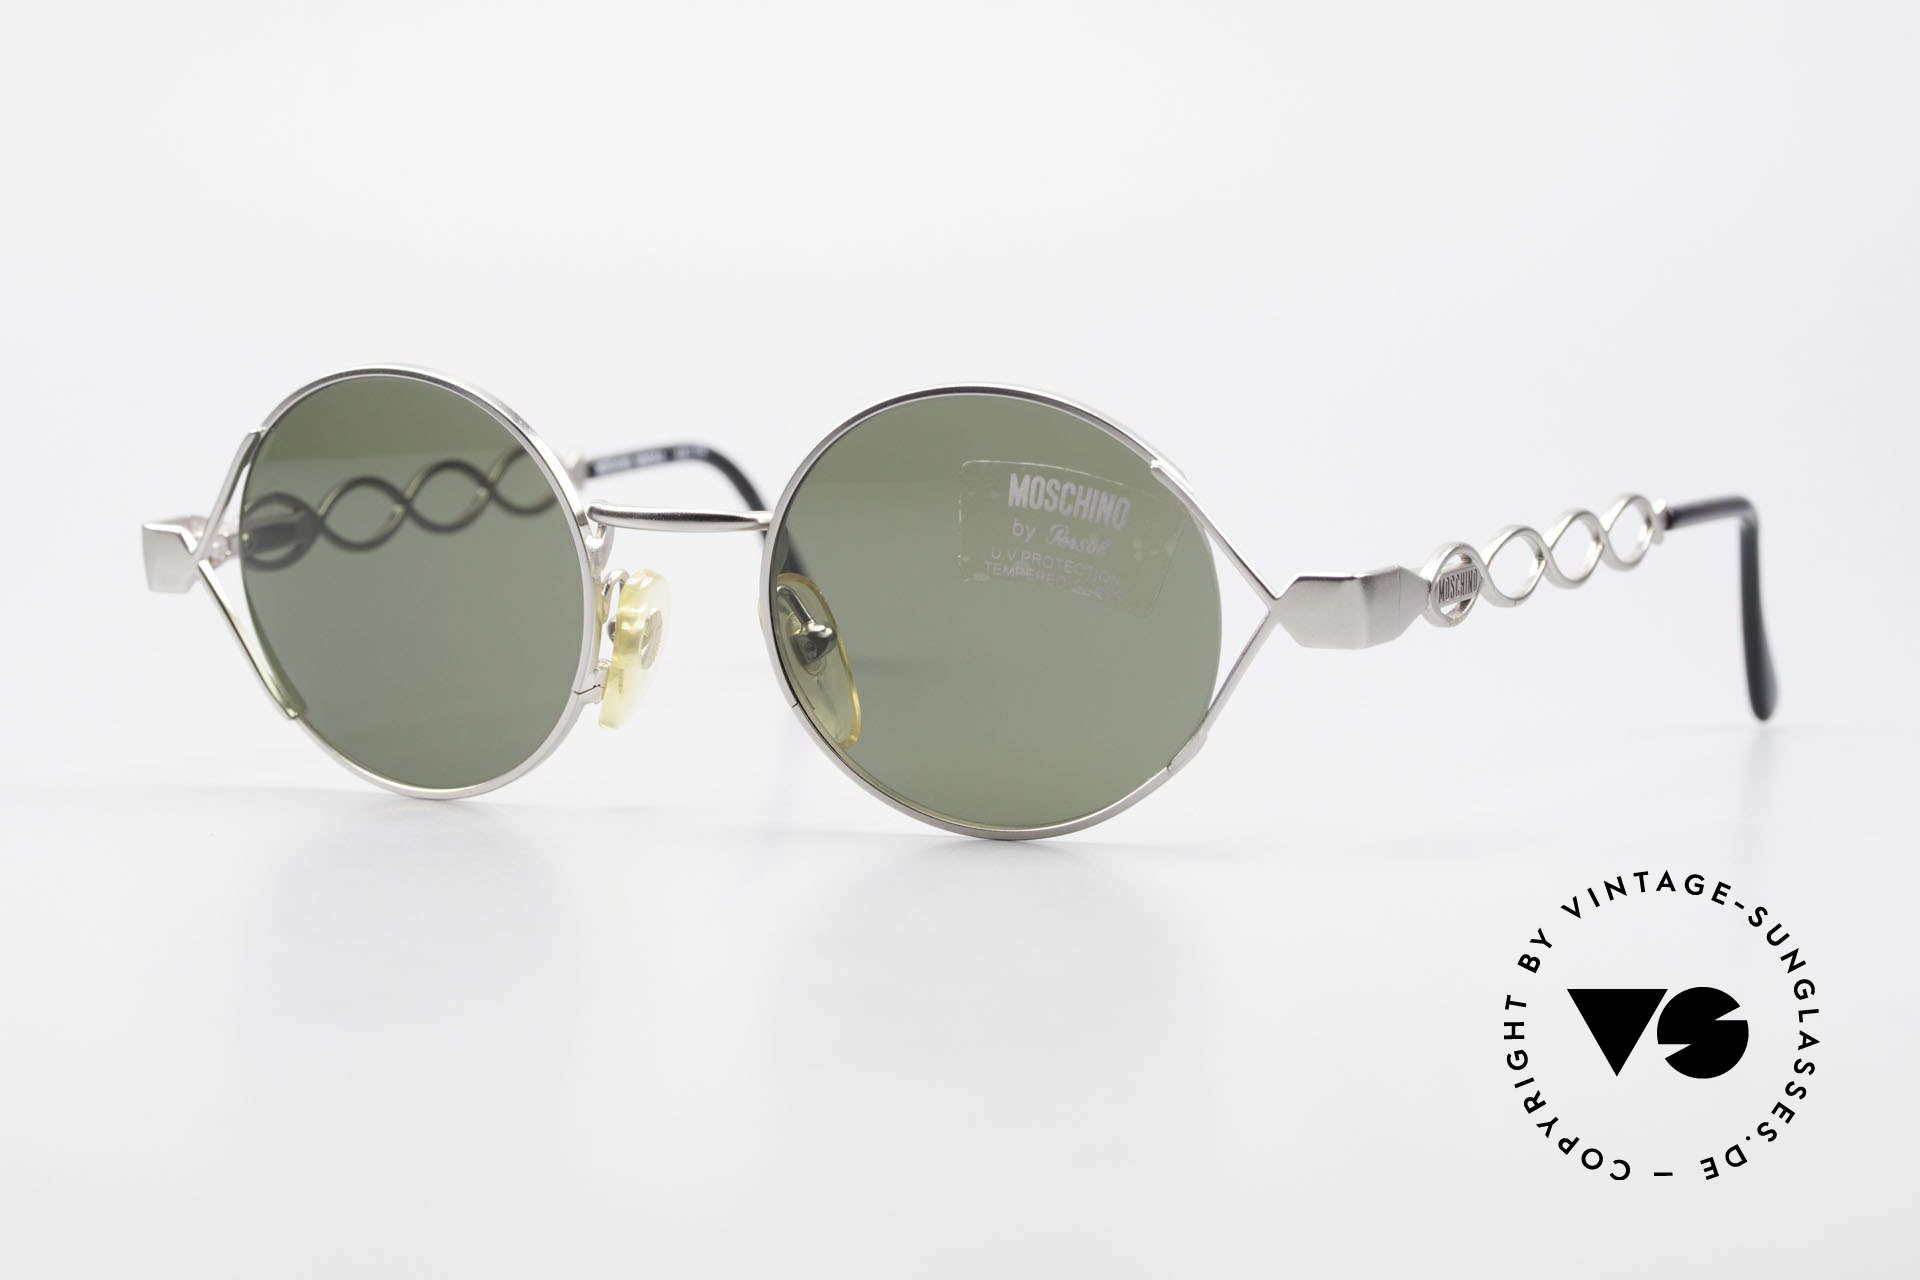 Moschino MM264 90s Ladies Designer Sunglasses, enchanting vintage 90's sunglasses by MOSCHINO, Made for Women